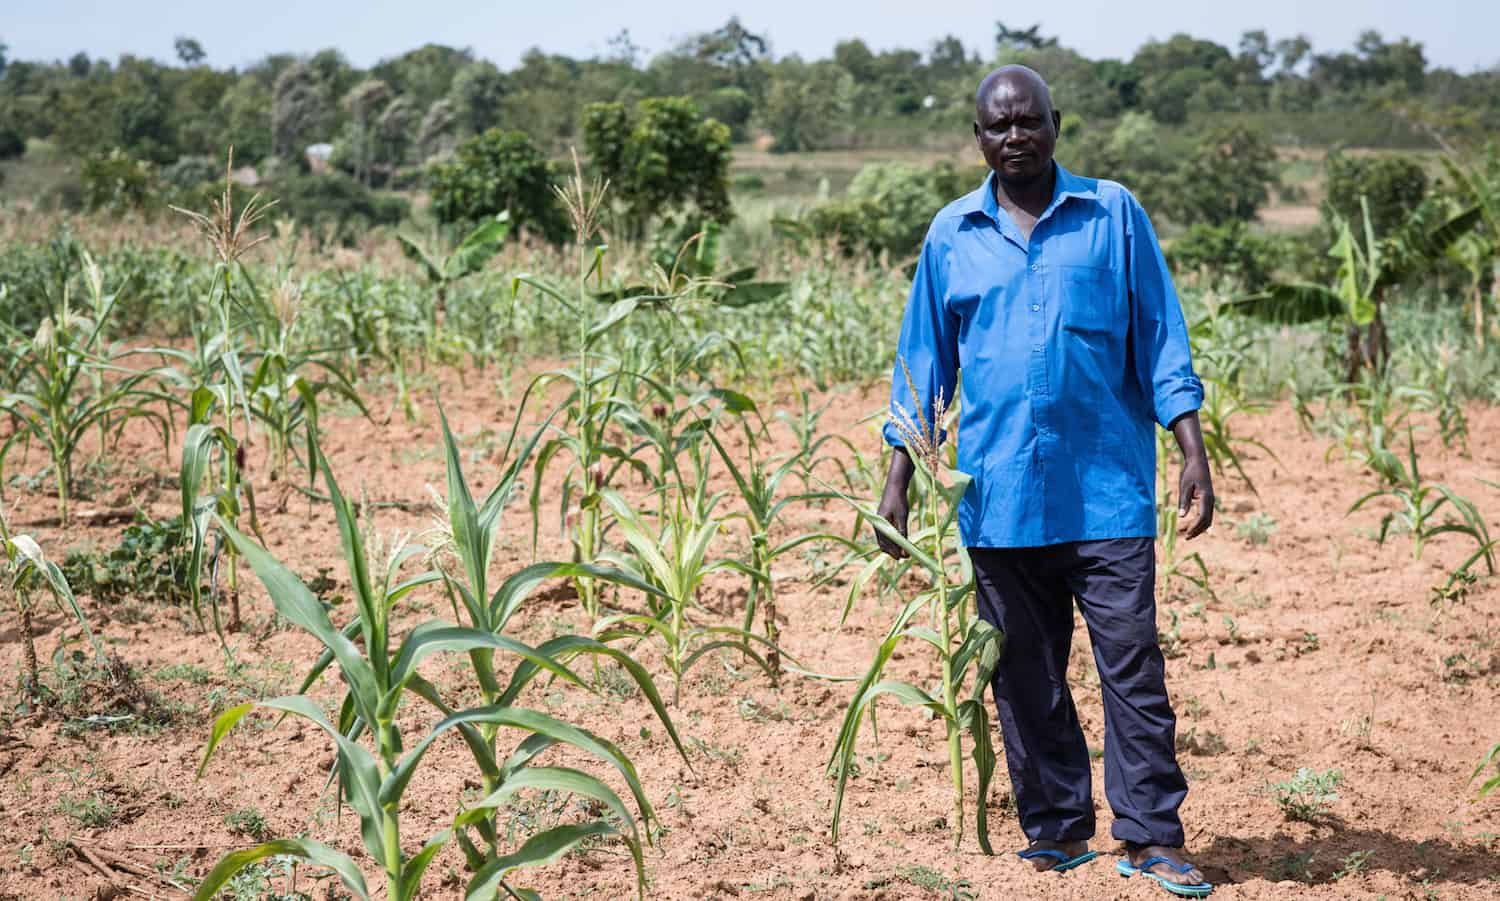 Extreme weather is a hallmark of climate change, and smallholder farmers like Moses are already feeling the toll.